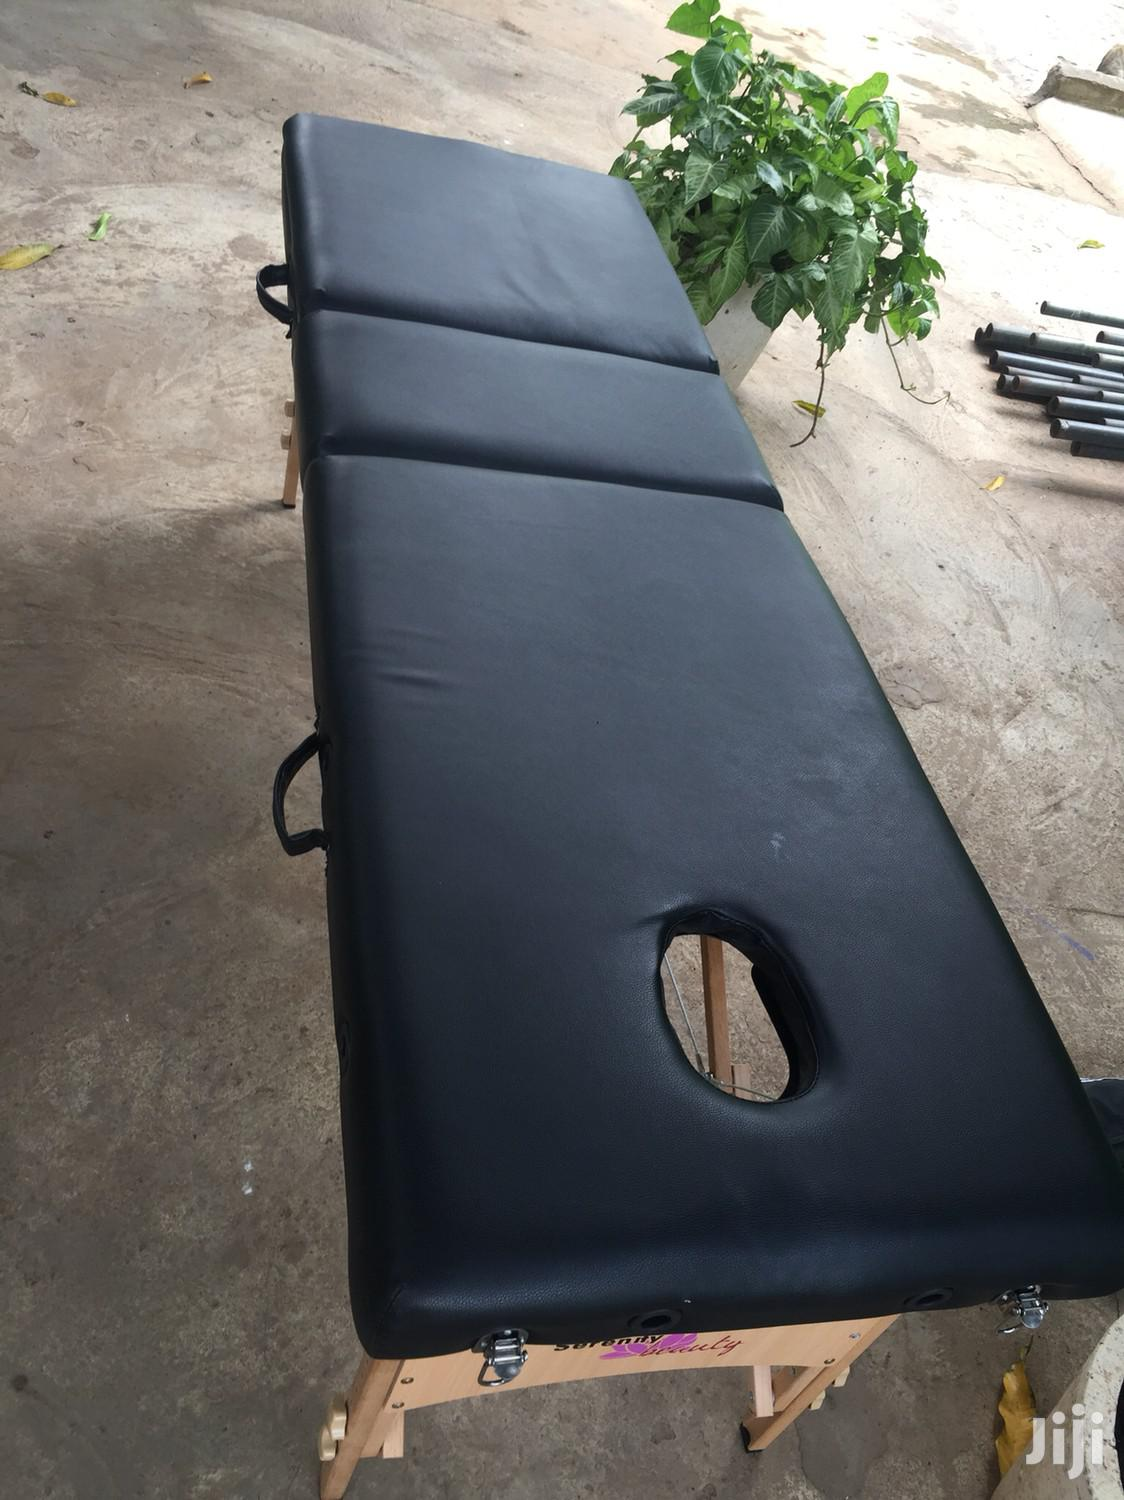 Archive: Serenity Beauty Massage Bed From U.K for Sale